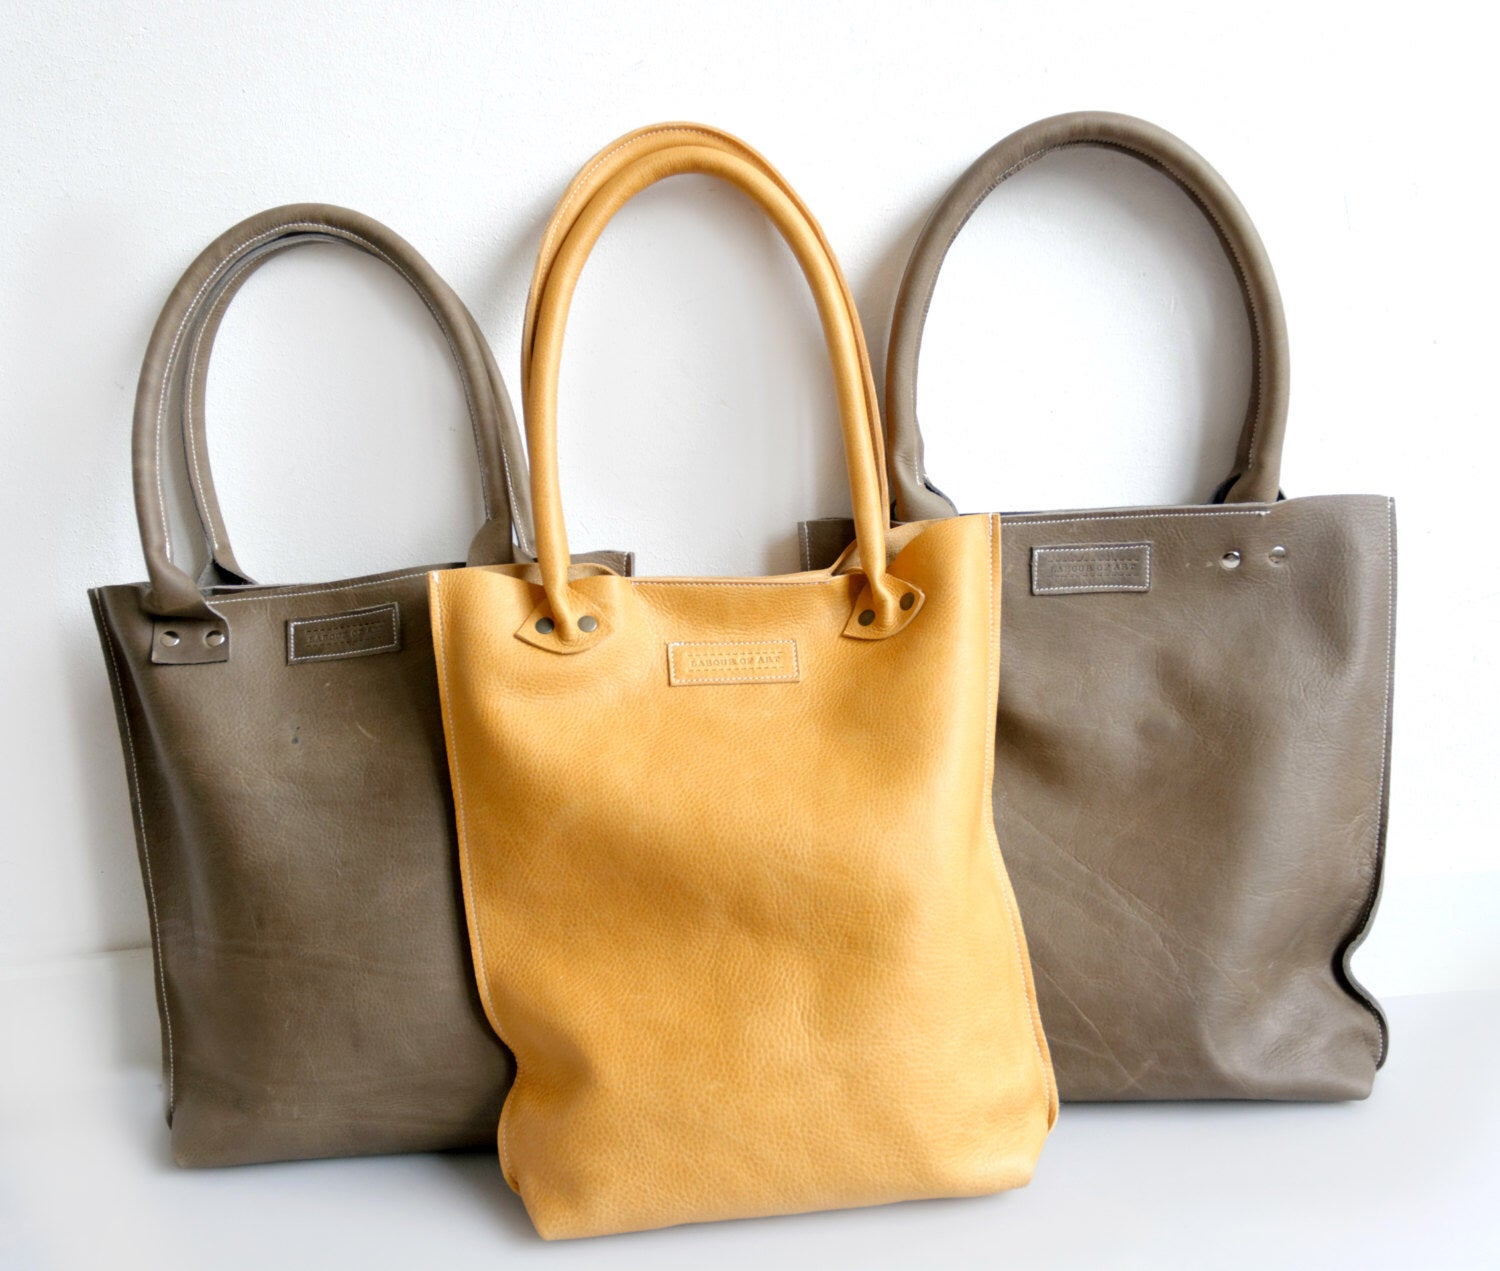 Image of Gray Leather Shopper, Wax Tanned Leather Bag